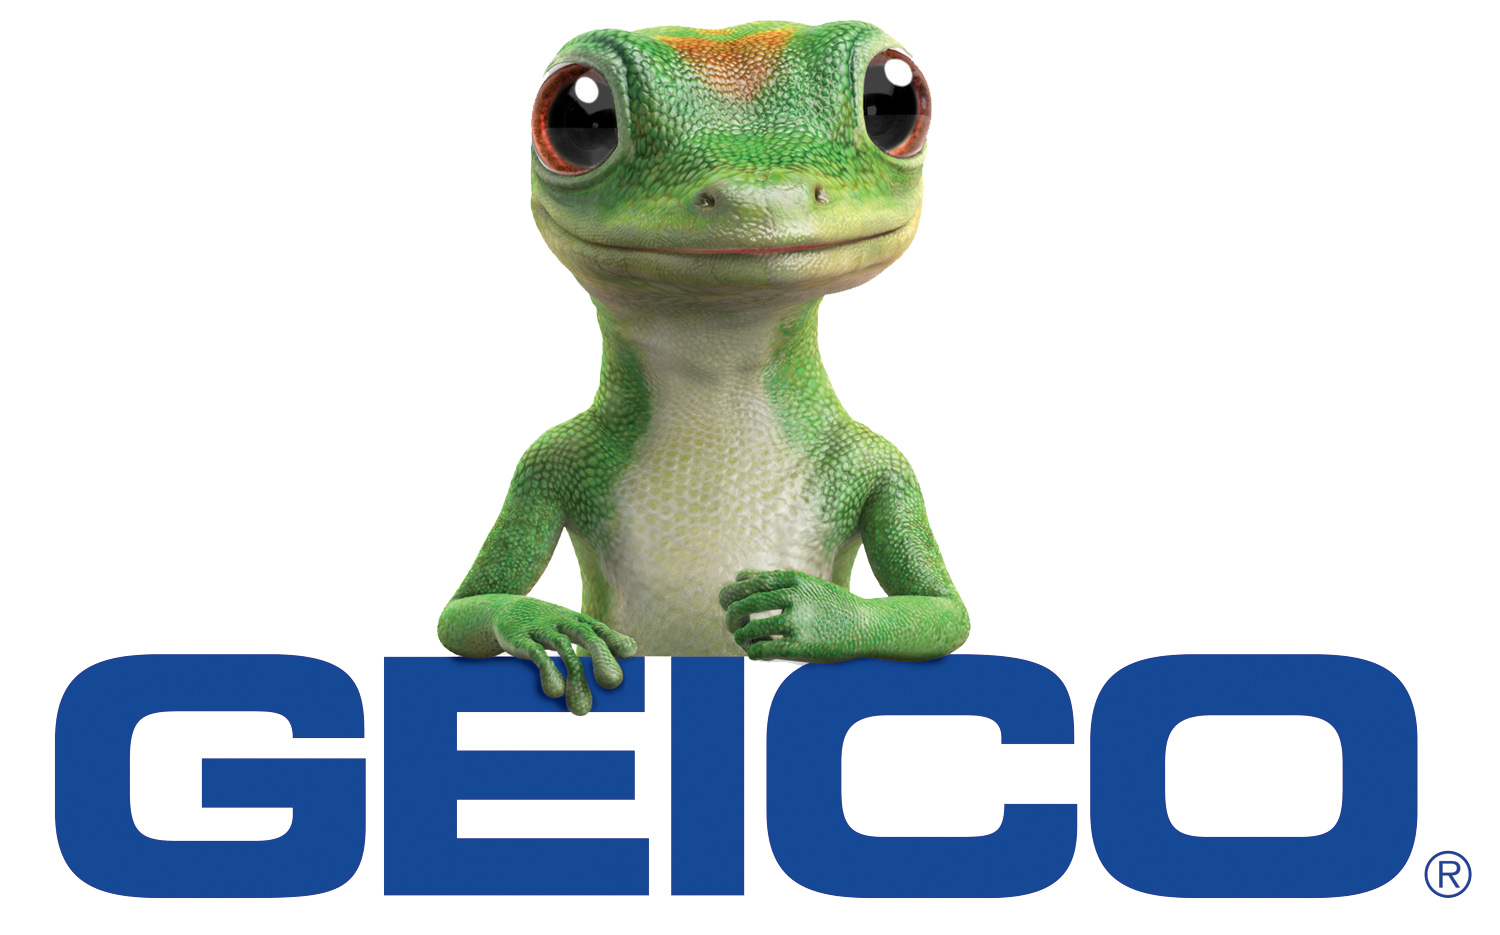 2015 GEICO Pathway to Completion Associate Degree Scholars Receive $2,000 in Scholarships